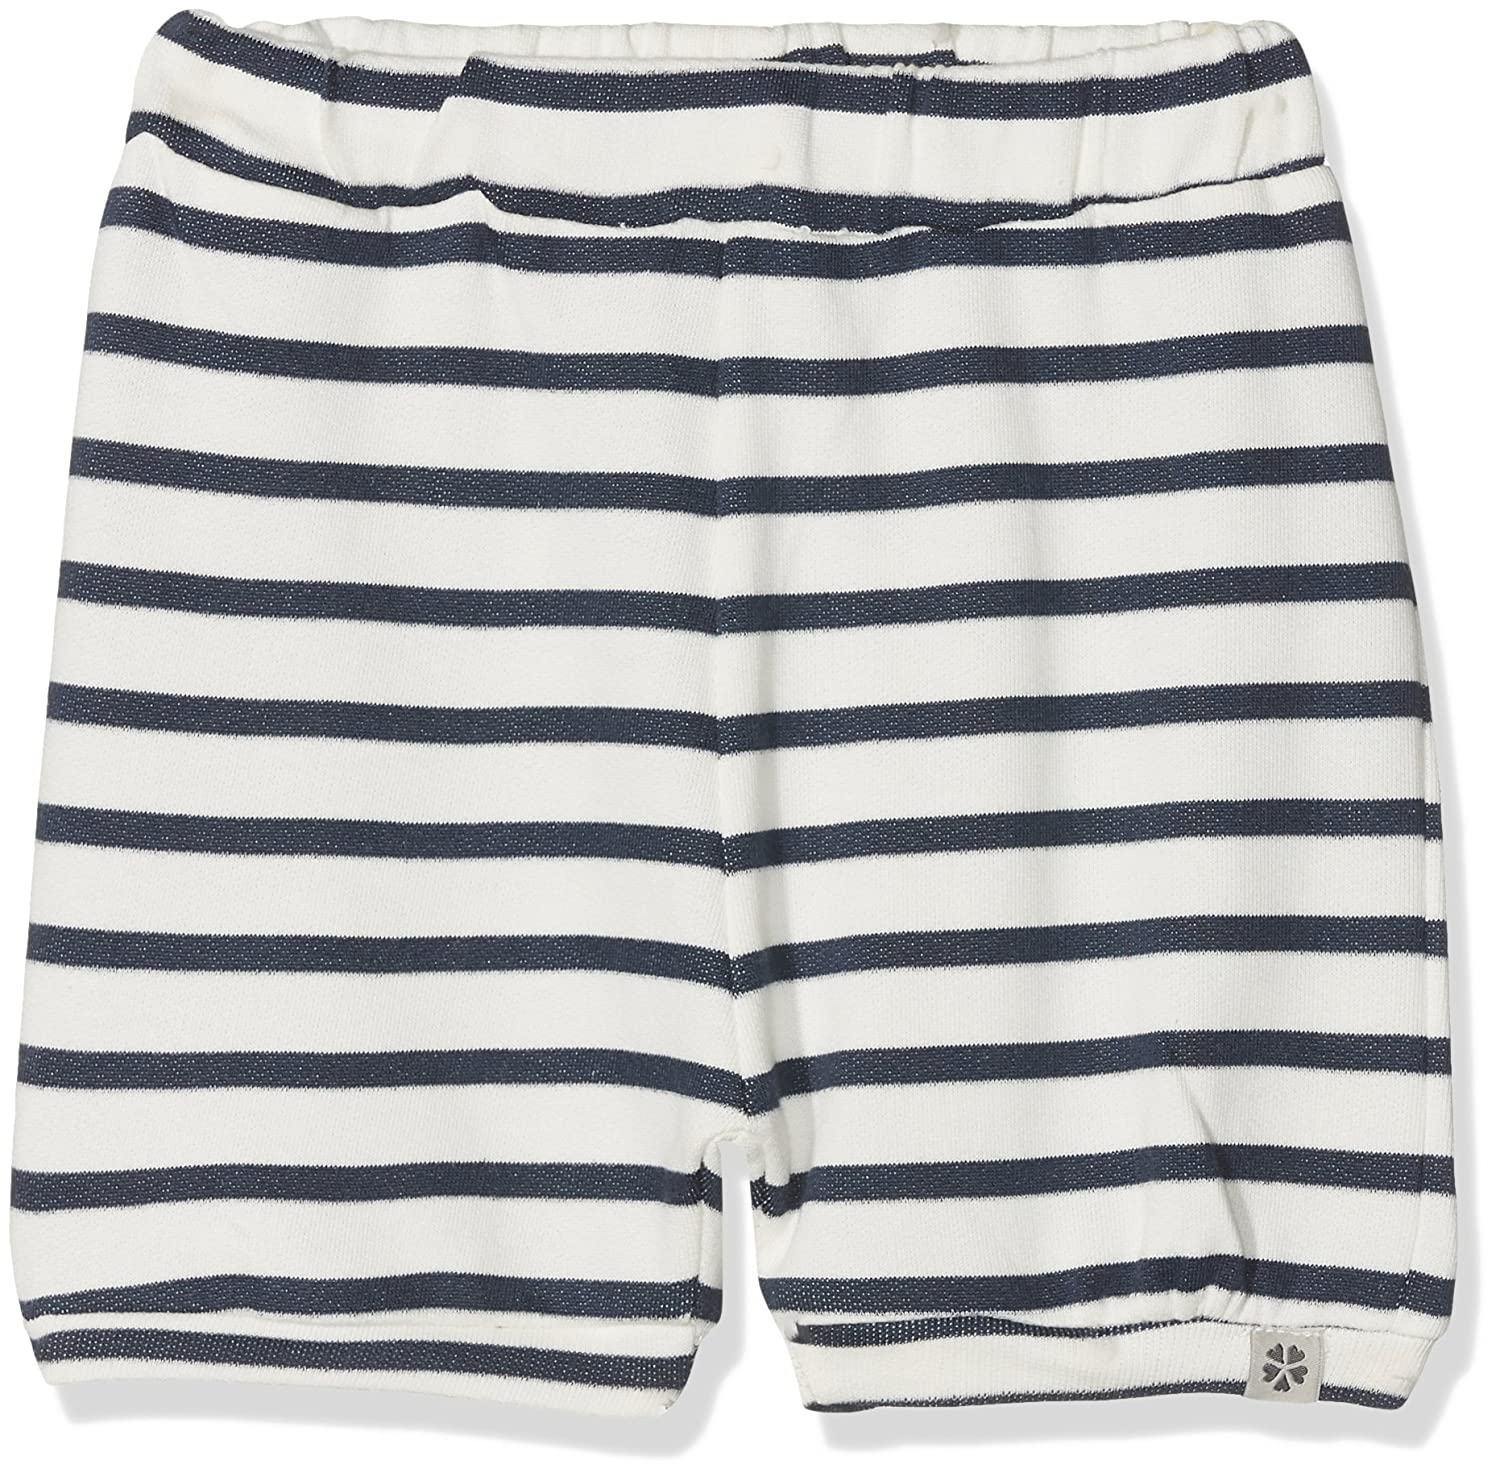 Papfar Unisex Baby Shorts Striped Sweat GOTS-Zertifiziert 716715GOTS